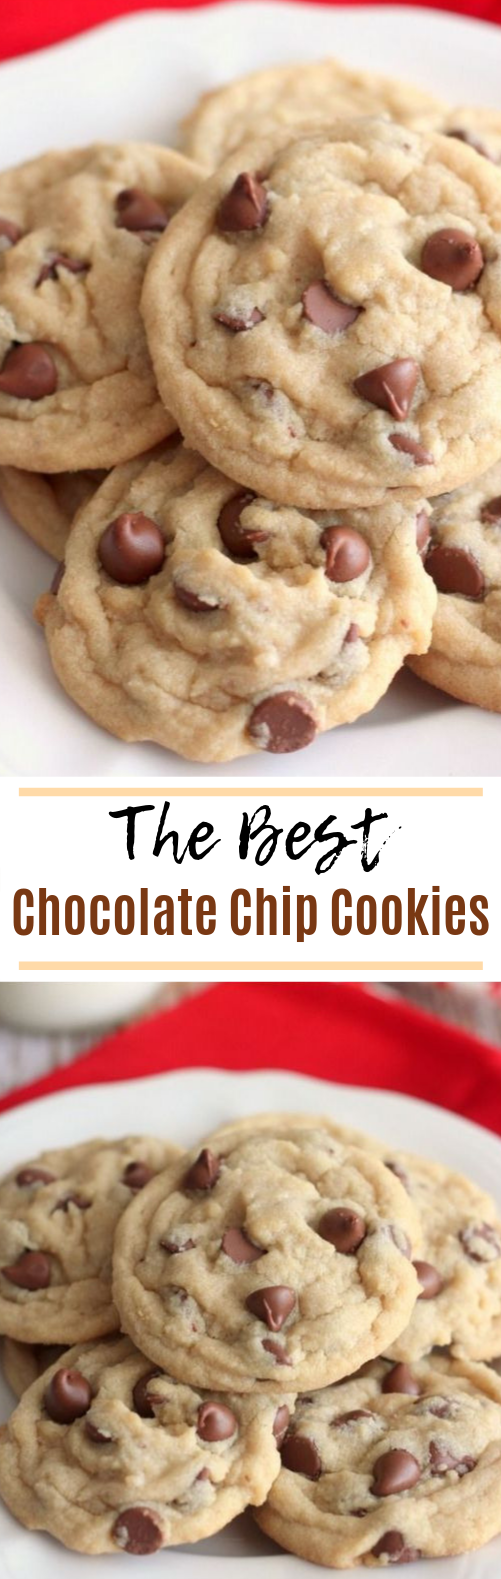 Chocolate Chip Cookies #cookies #desserts